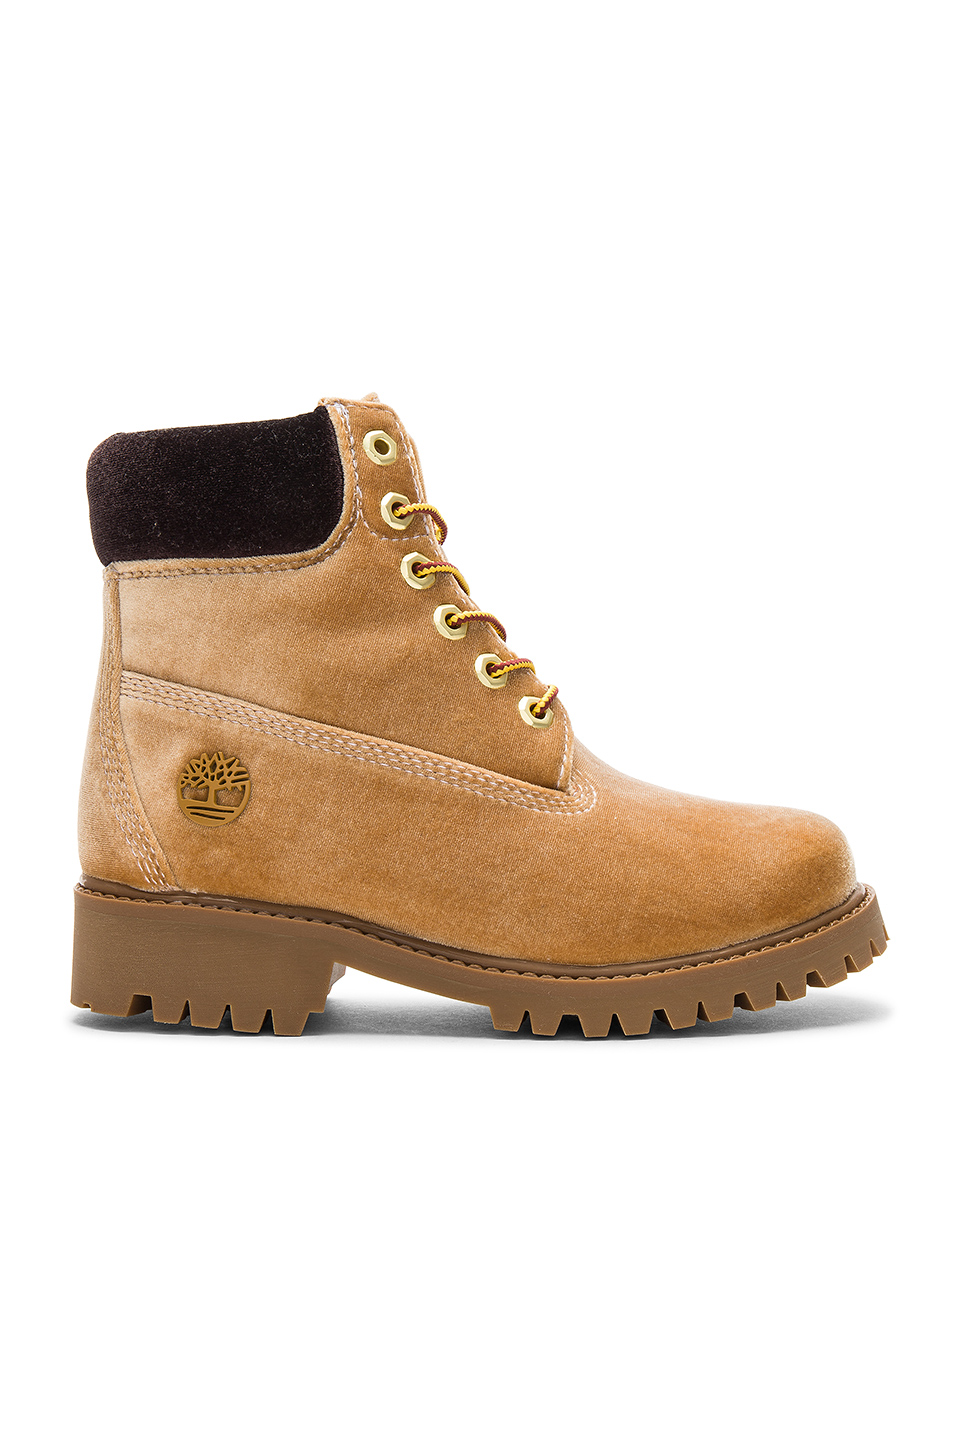 OFF-WHITE Timberland Boot in Camel Brown